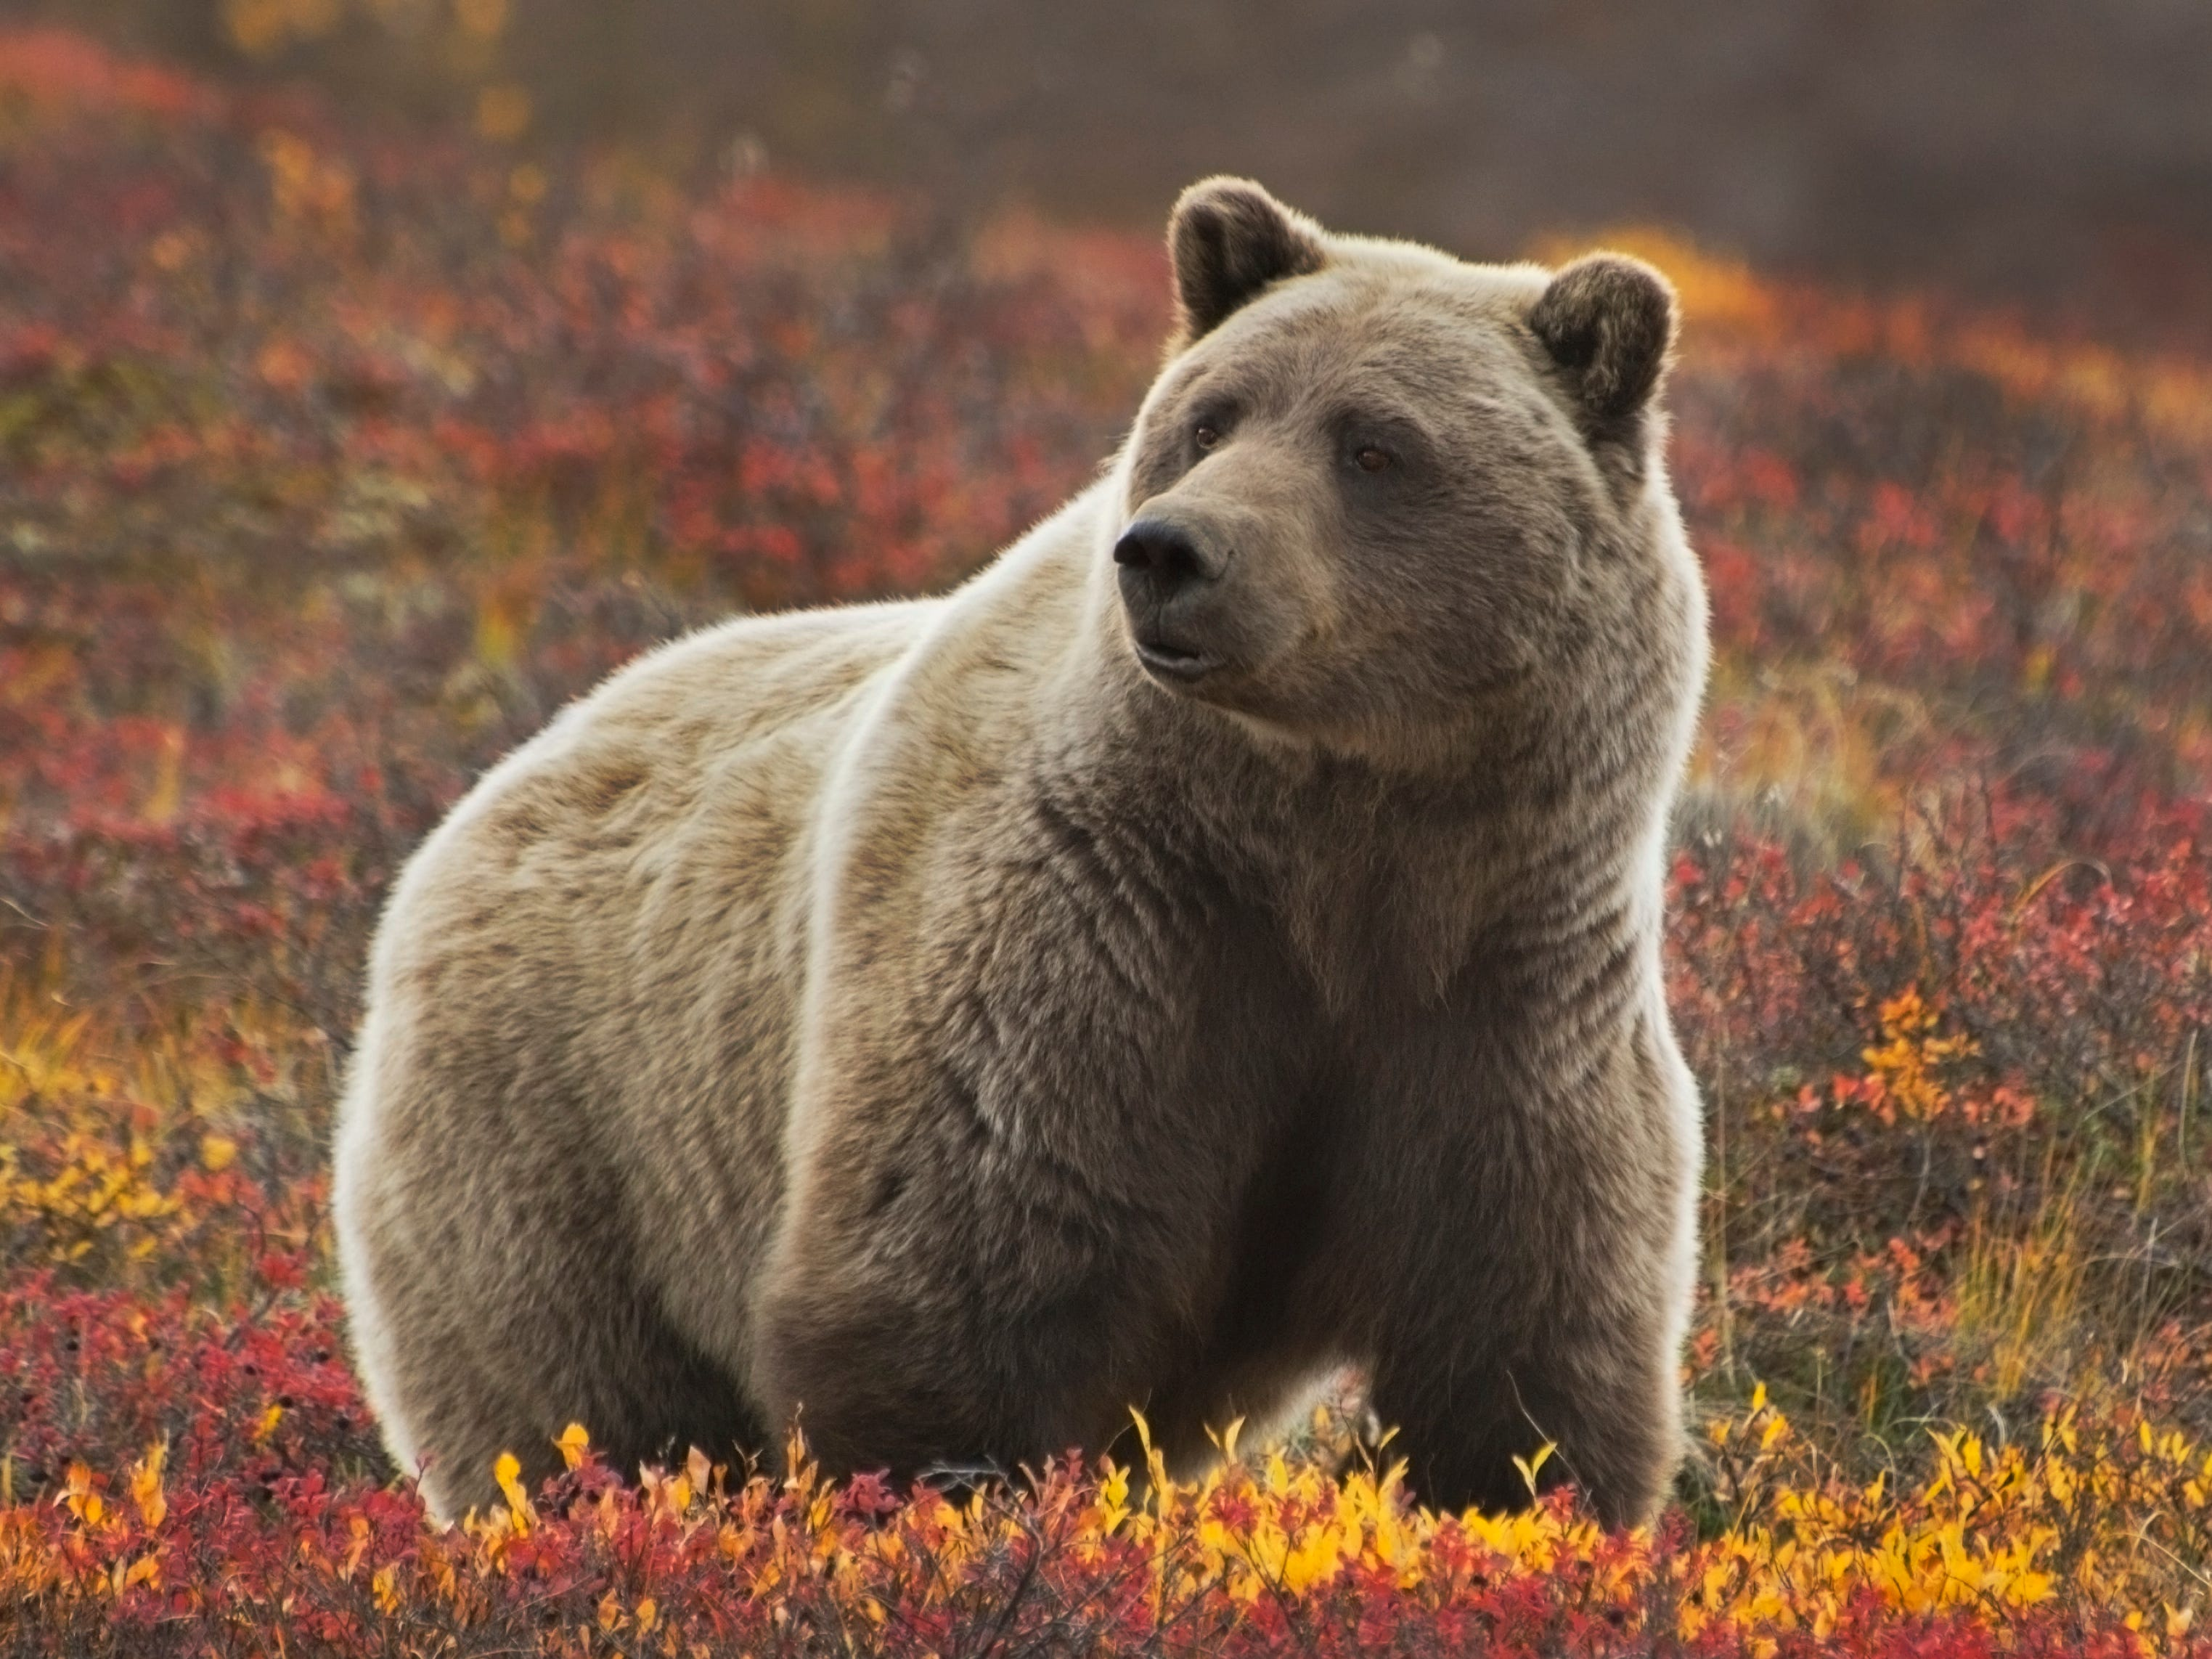 Alaska: With bald eagles soaring overhead, humpback whales flashing their flukes in the water, and hungry bears stalking rivers in search of salmon, Alaska offers a feast of wildlife travel adventures. Denali National Park is a good place to spot Alaska's version of the African Big Five: moose, caribou, Dall sheep, wolves and grizzly bears. Many visitors come on cruise ships through the Inside Passage, where you can often see marine animals such as sea otters, Steller sea lions, harbor seals and various types of whales.